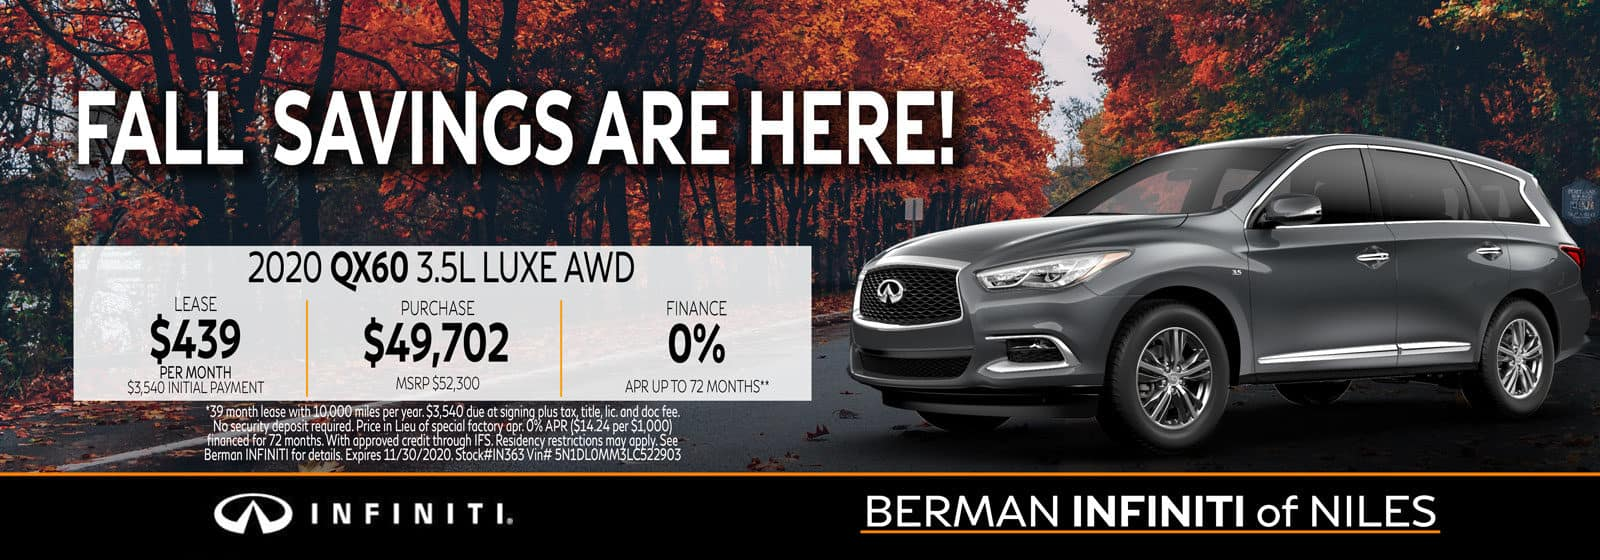 New 2020 INFINITI QX60 November Offer at Berman INFINITI of Niles!